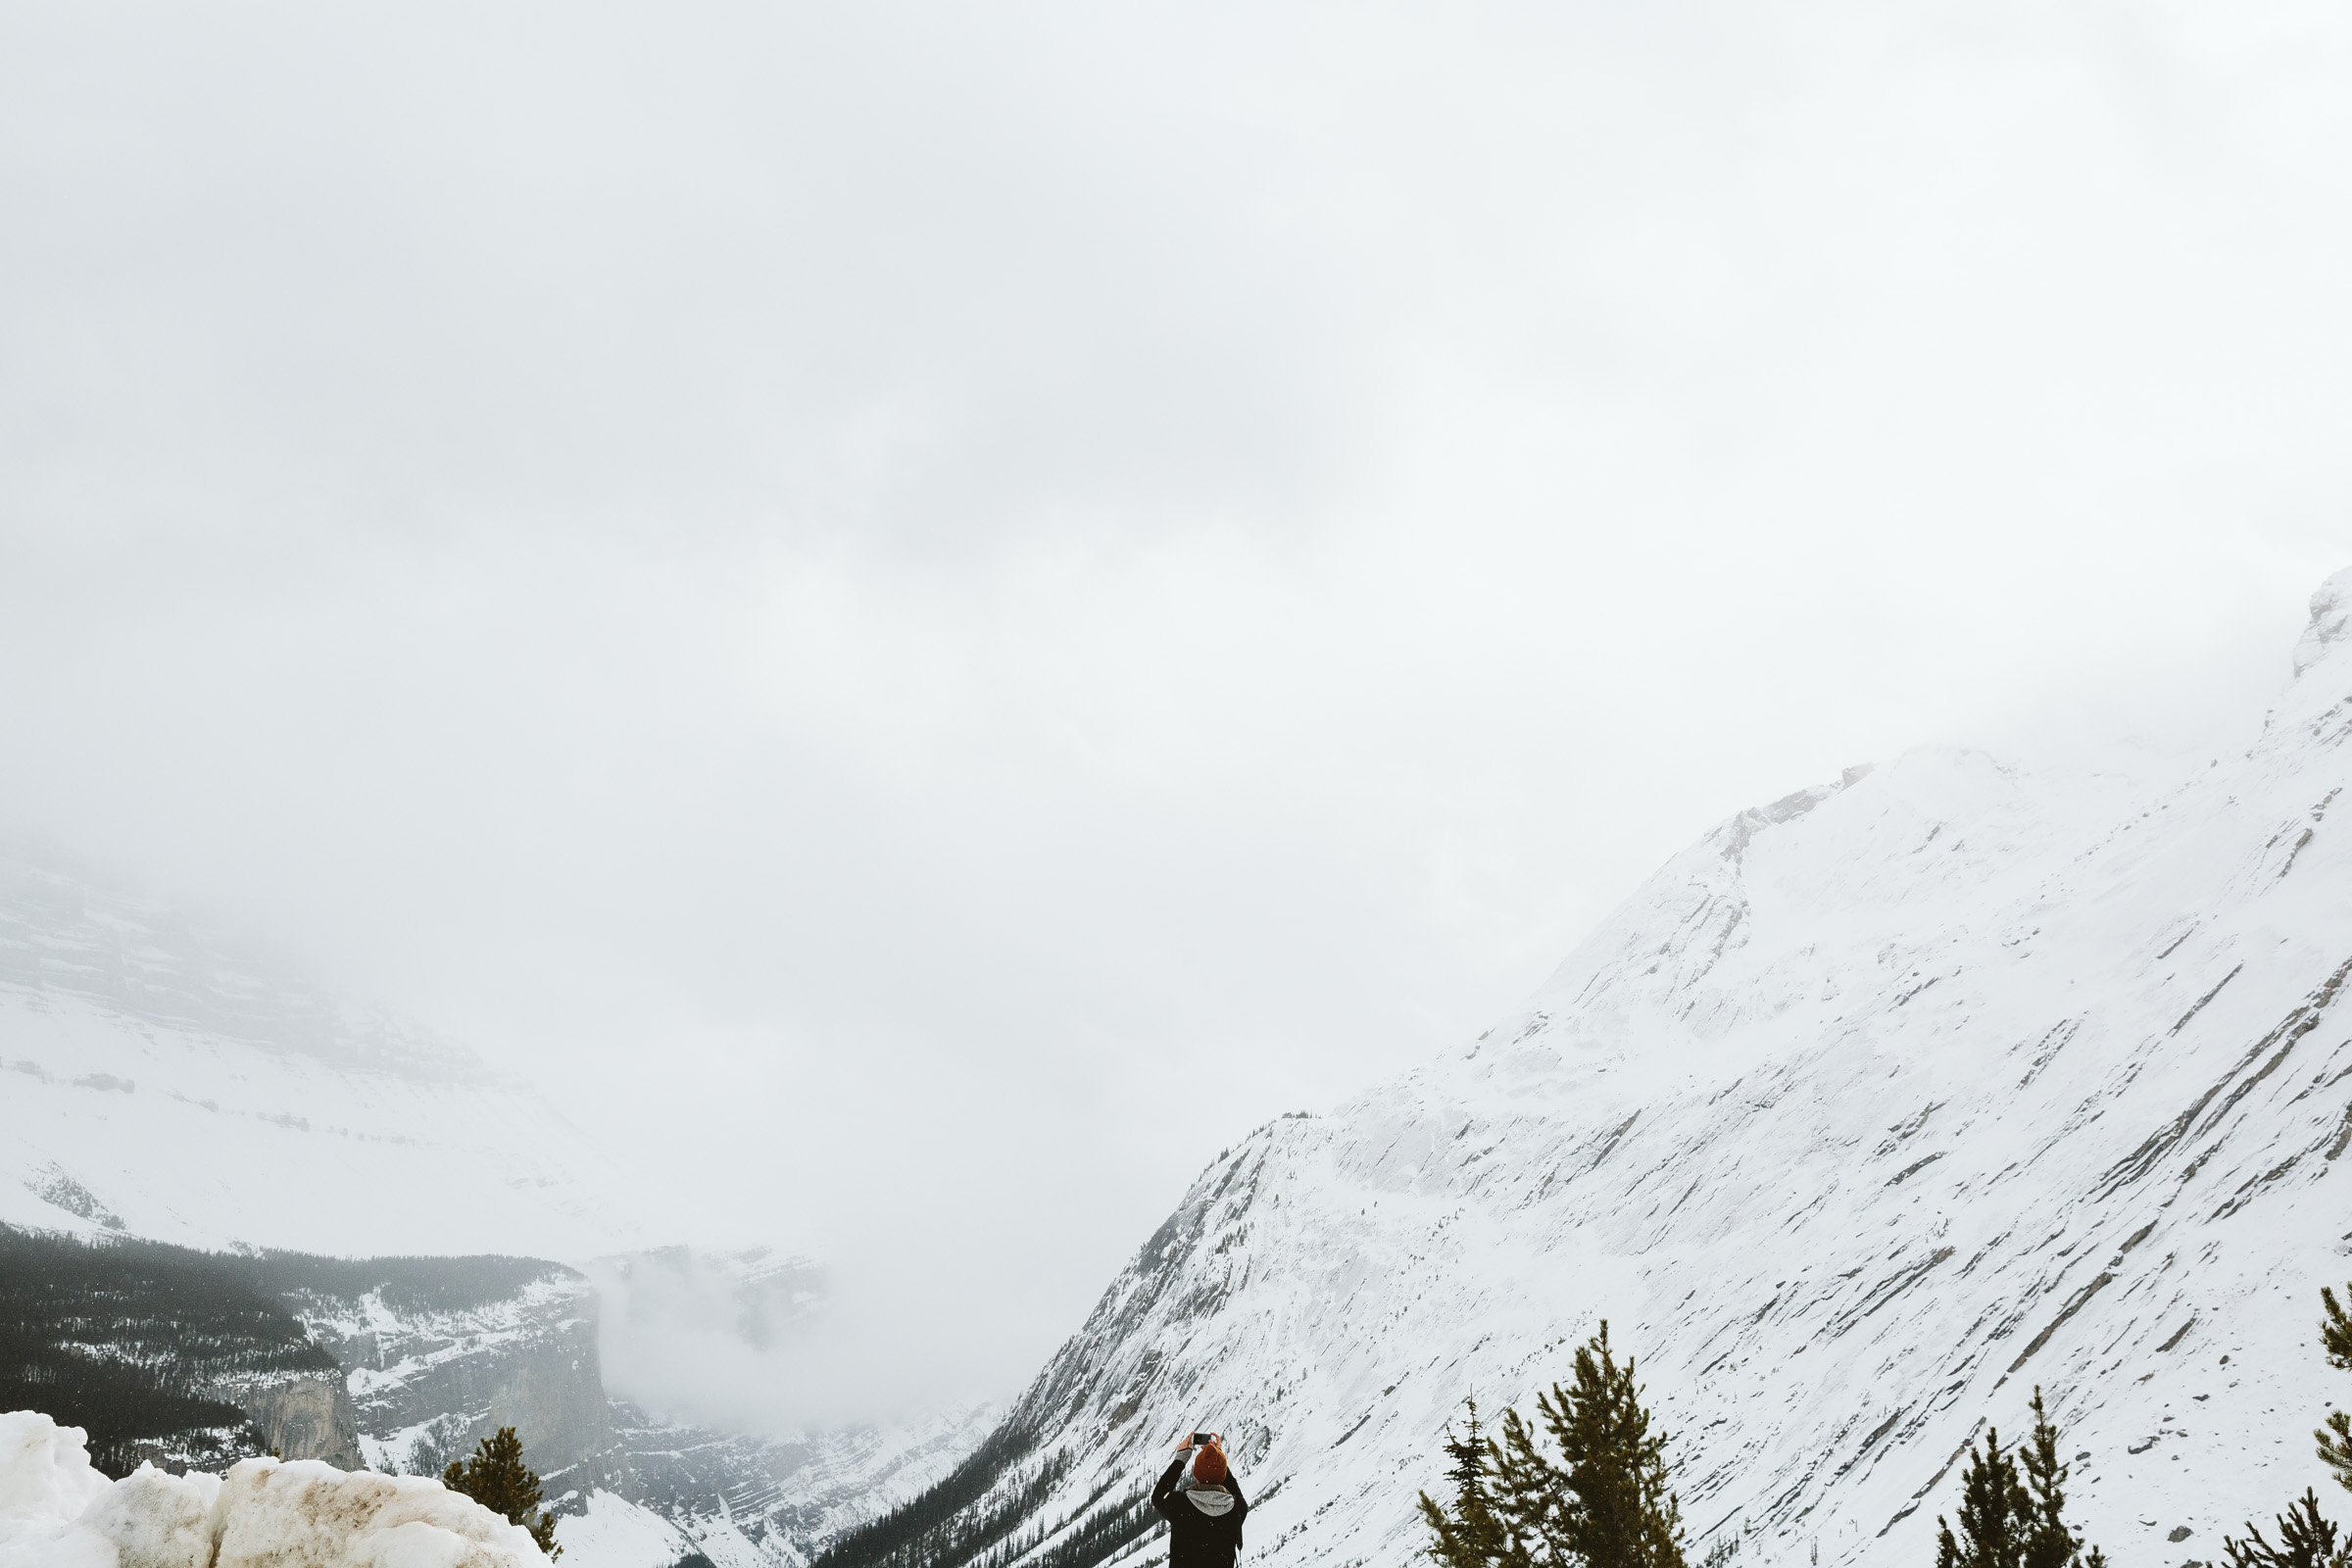 z-canada-alberta-lifestyle-photography-mikeseehagel-85